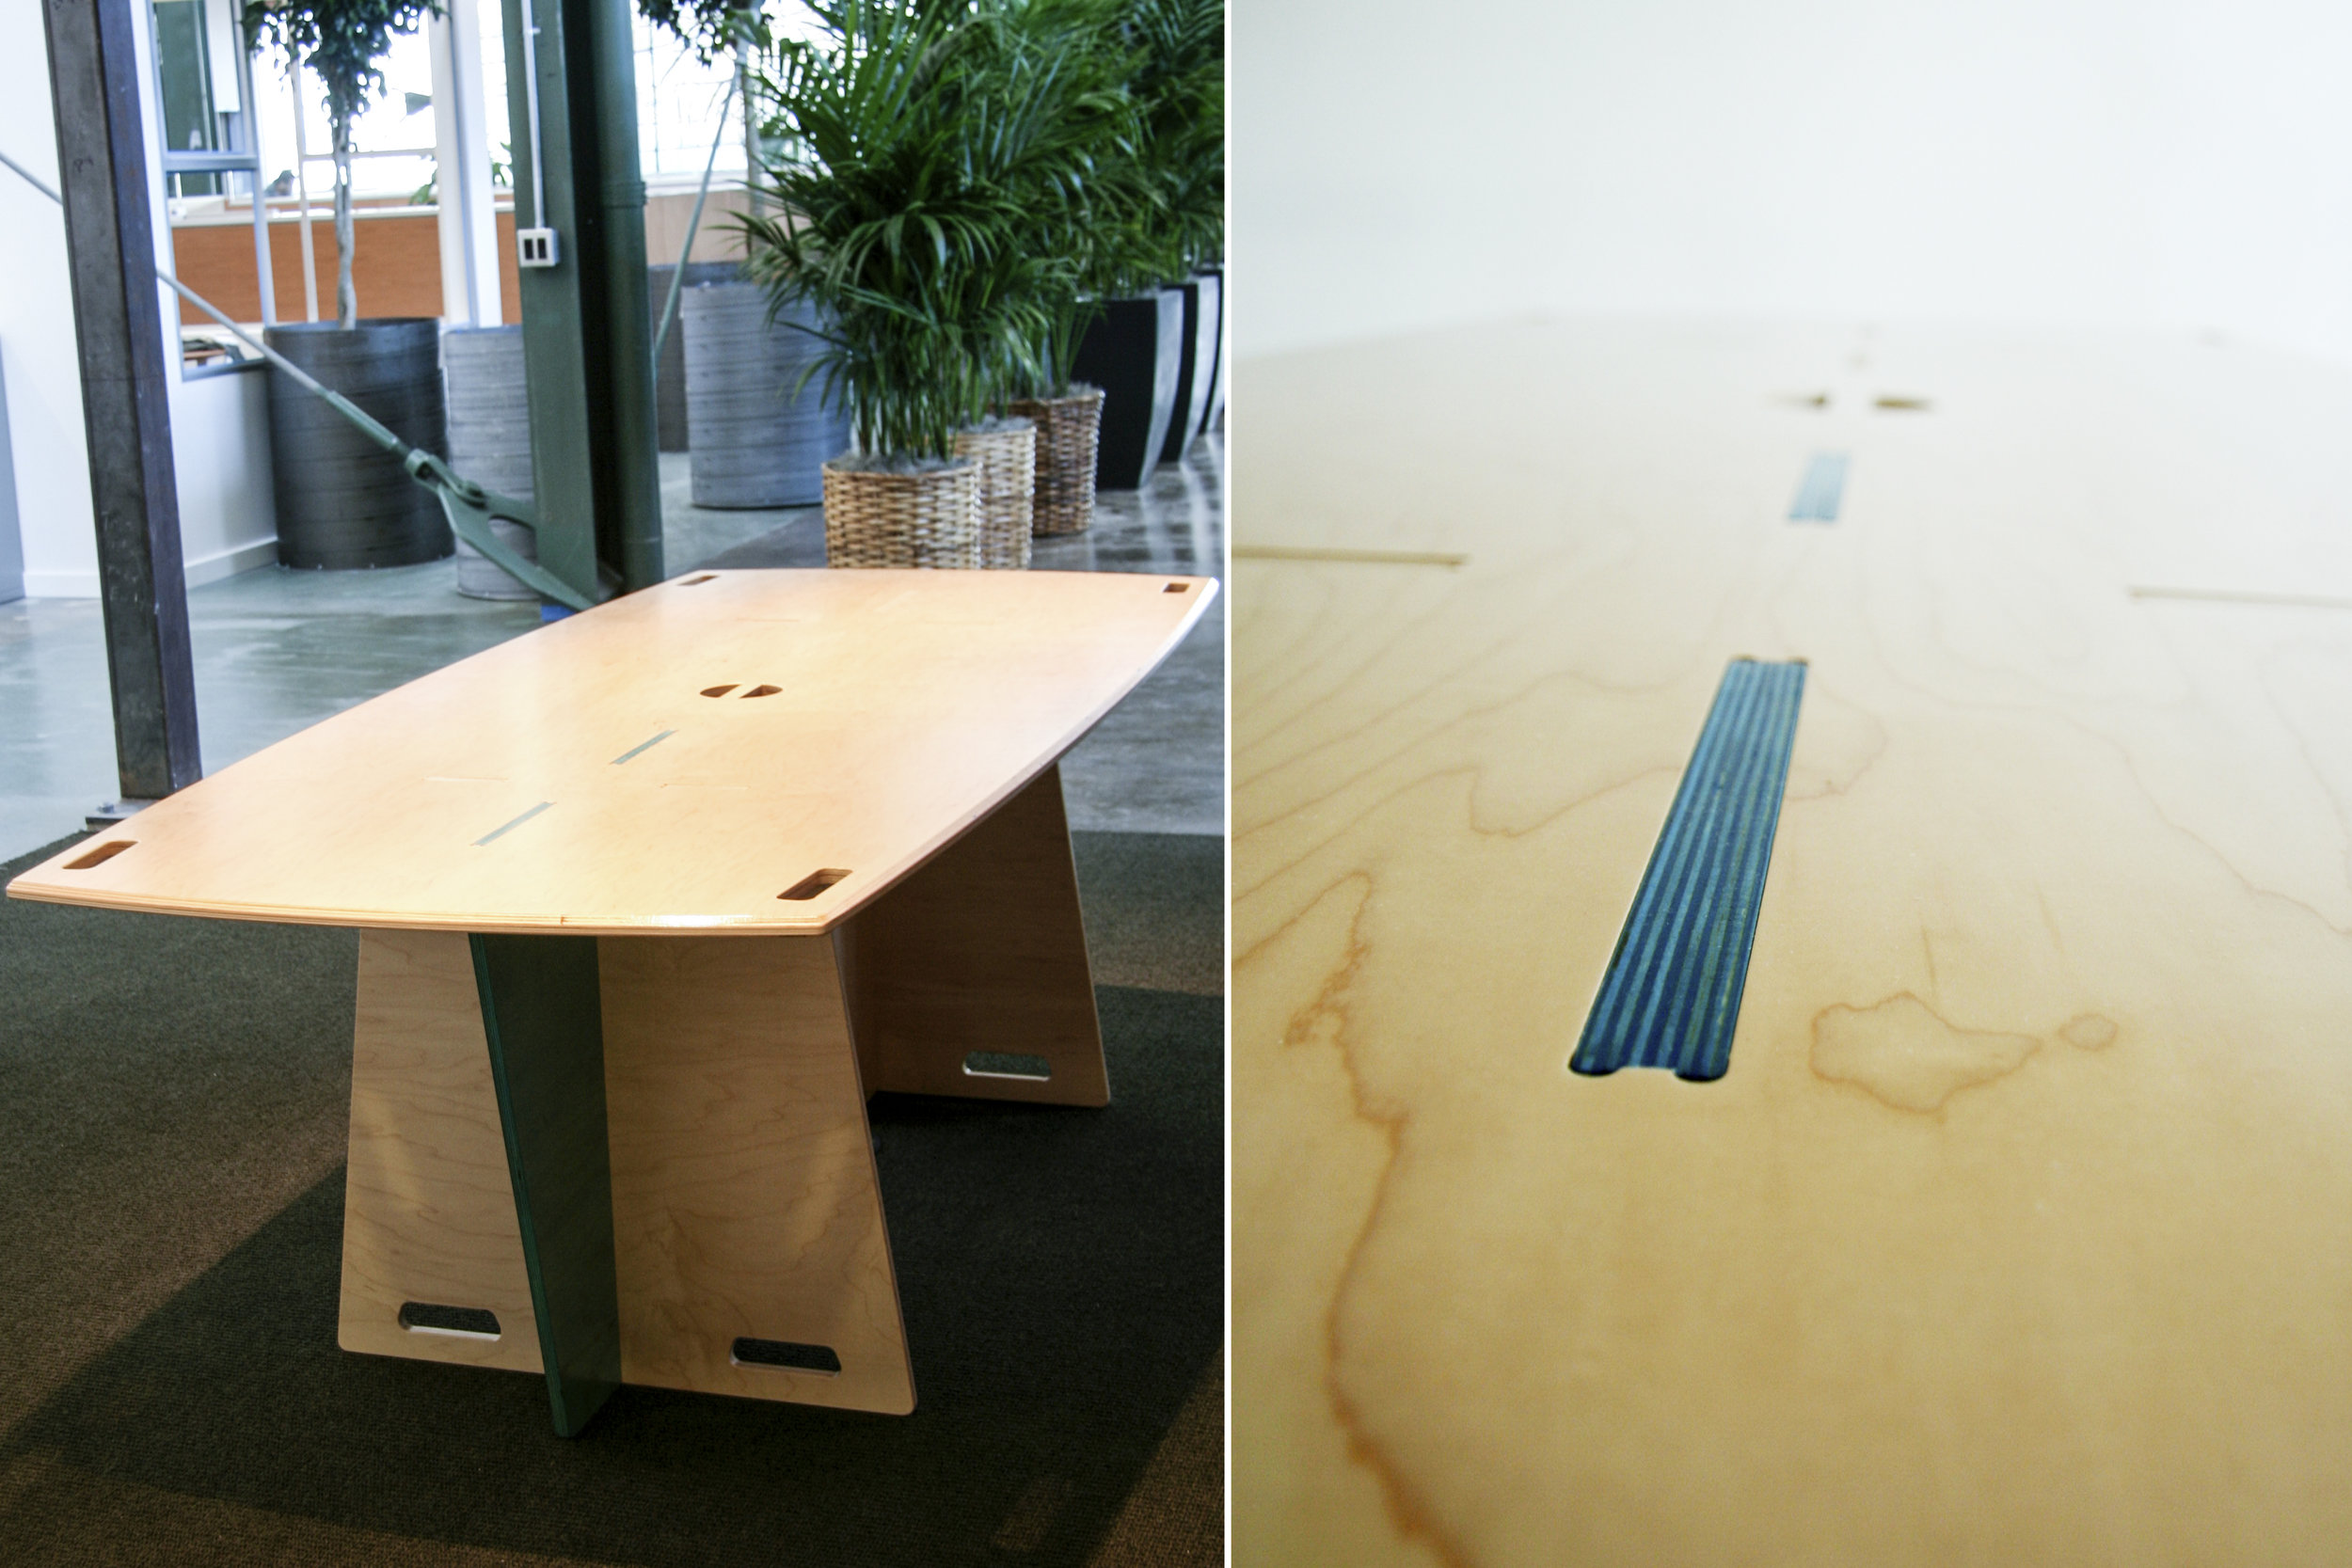 These large flat-pack tables are also set up as meeting tables for the executives.